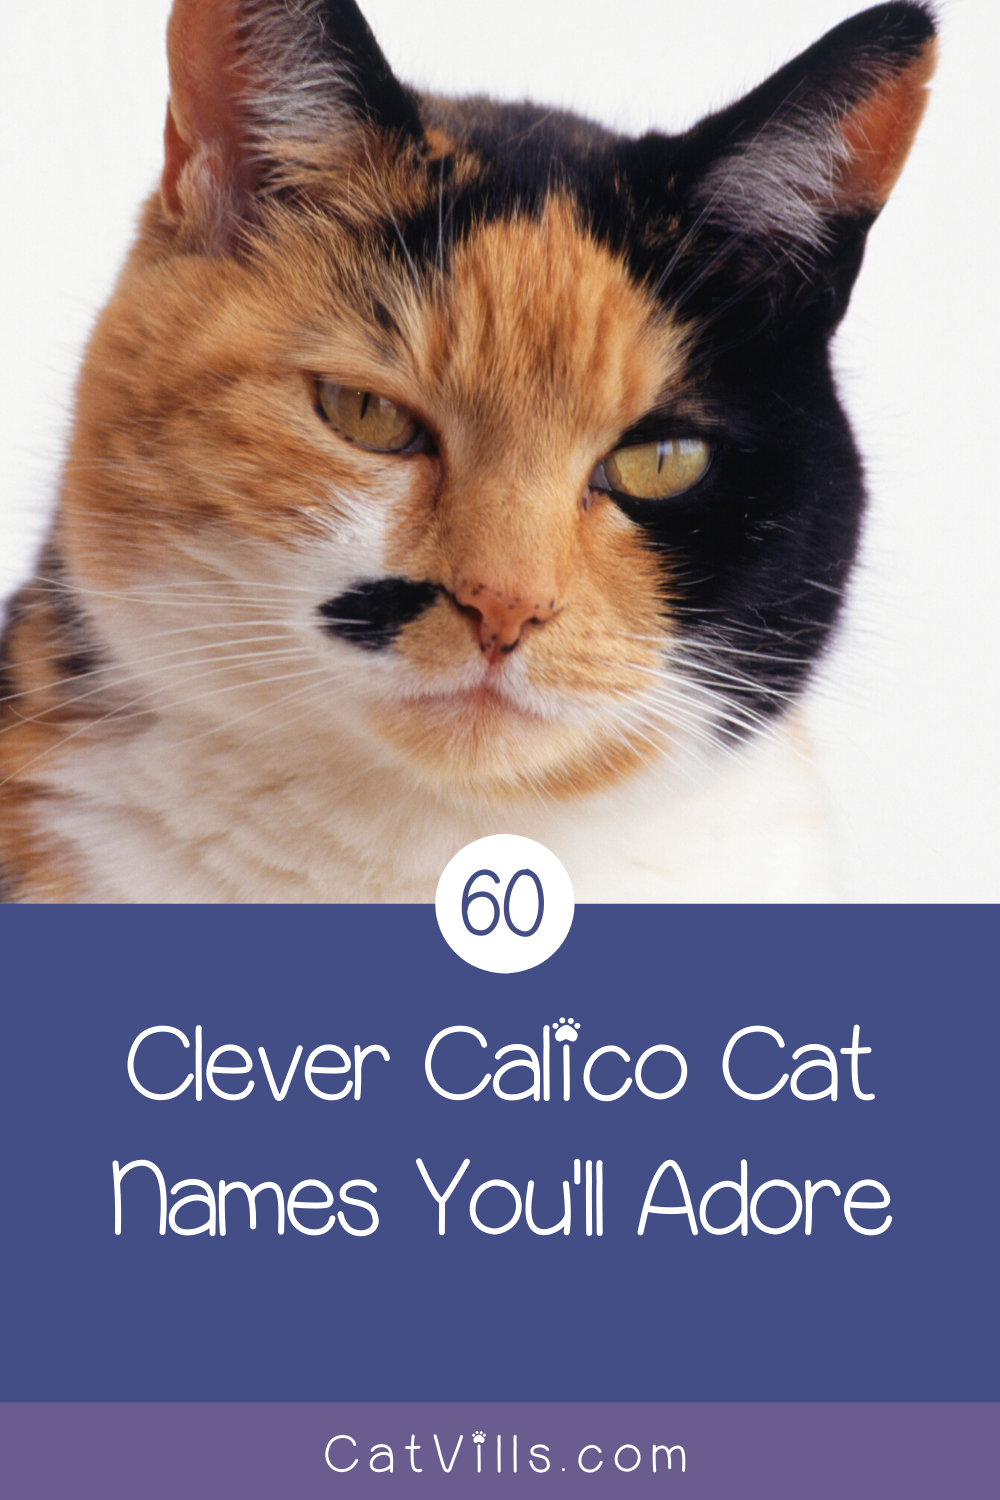 60 Clever Calico Cat Names You Ll Adore Catvills In 2020 Calico Cat Names Cat Names Calico Cat